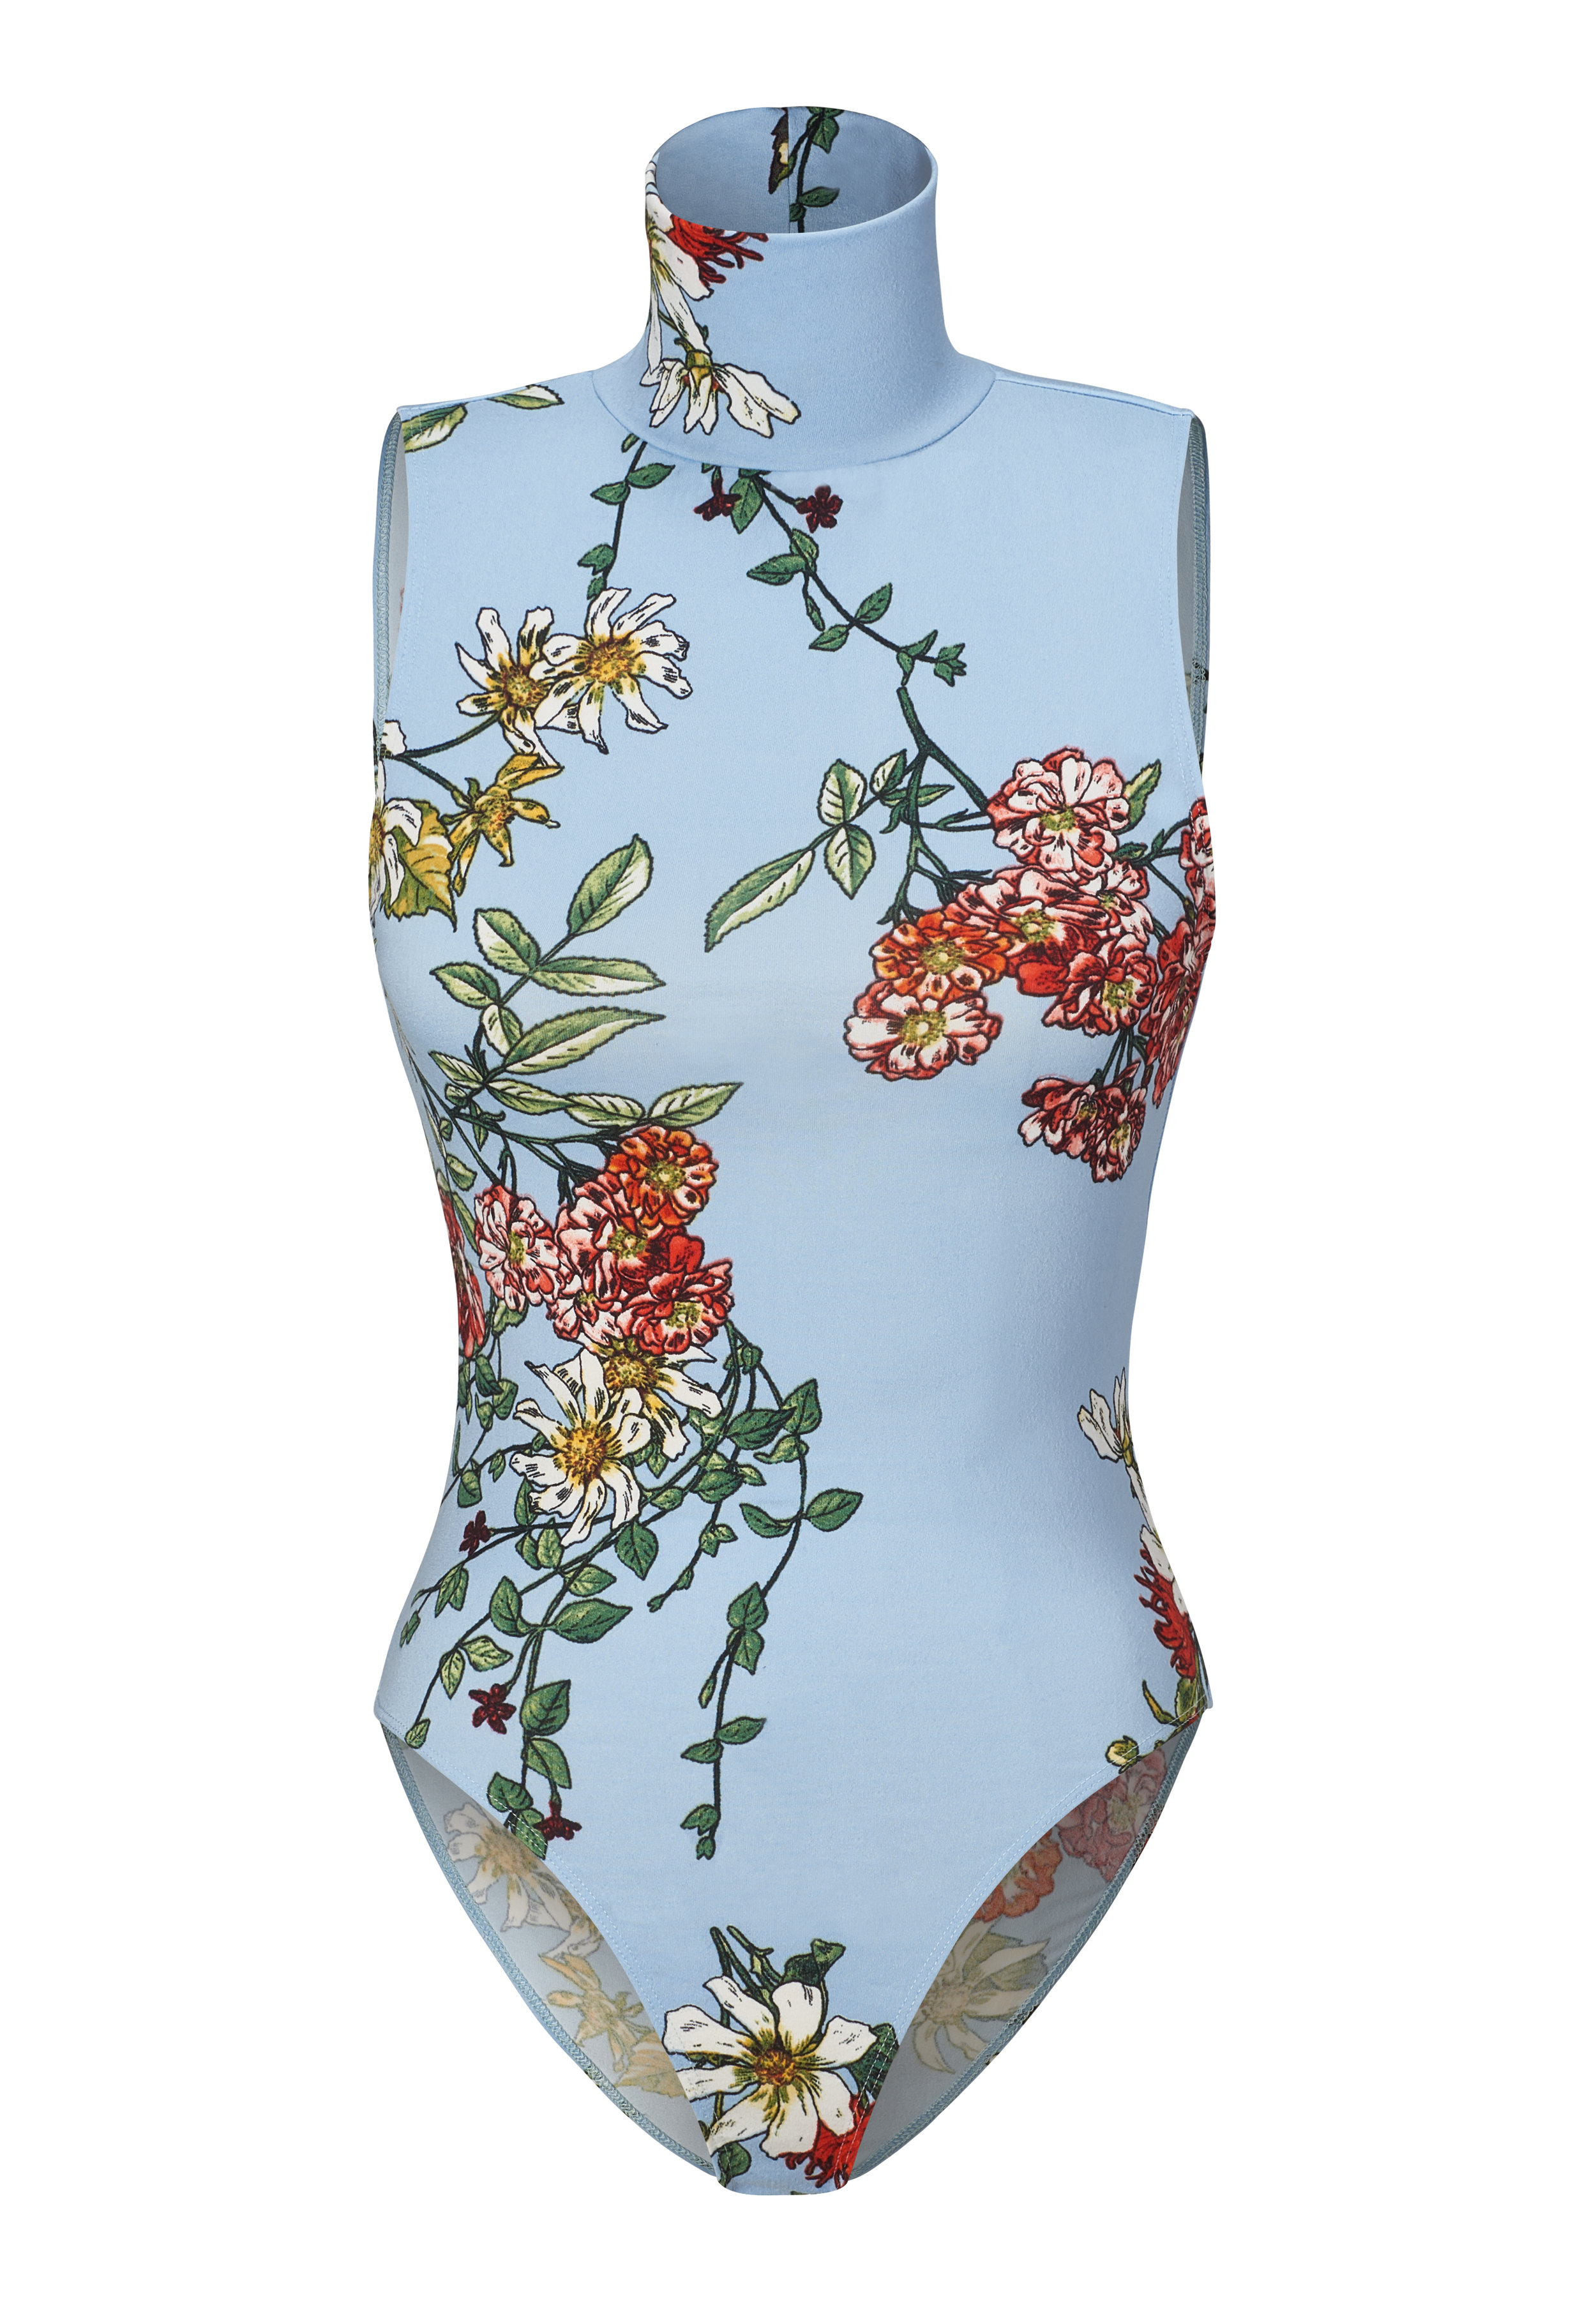 The Enchanted Moment Bodysuit $170